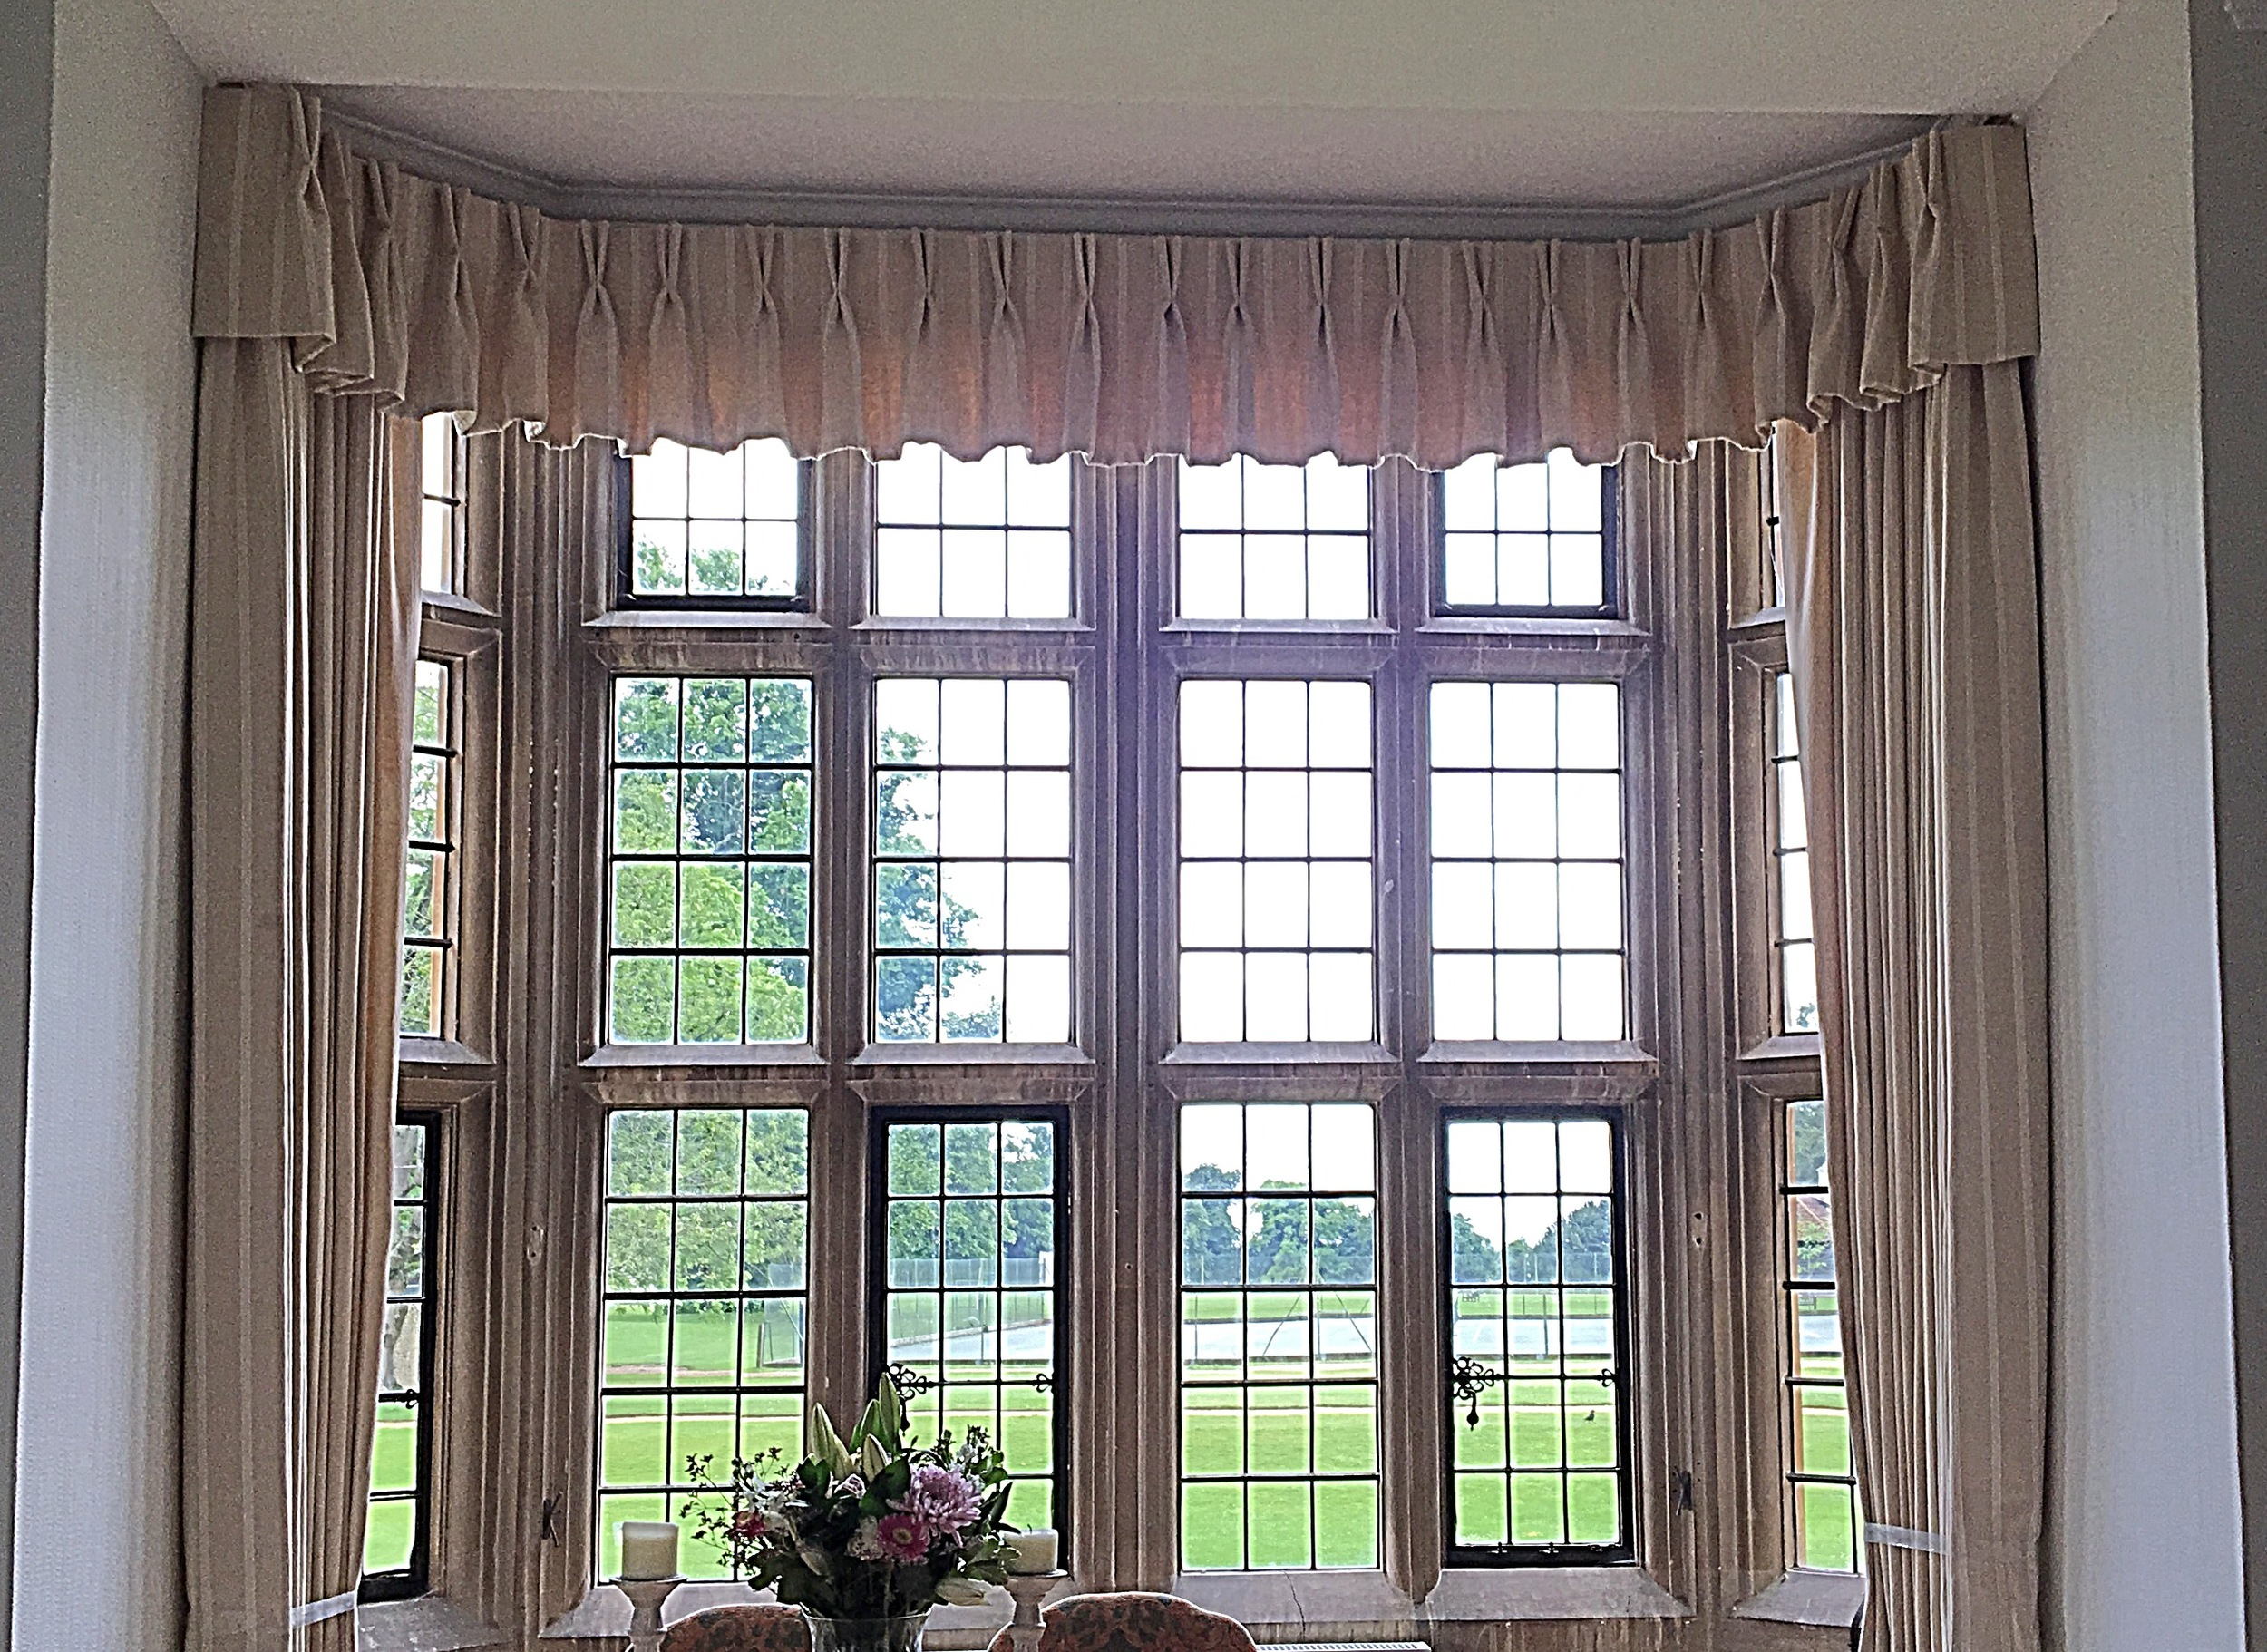 Triple Pinch Pleat Valance, Interlined Curtains, Private Boarding School In Oxfordshire